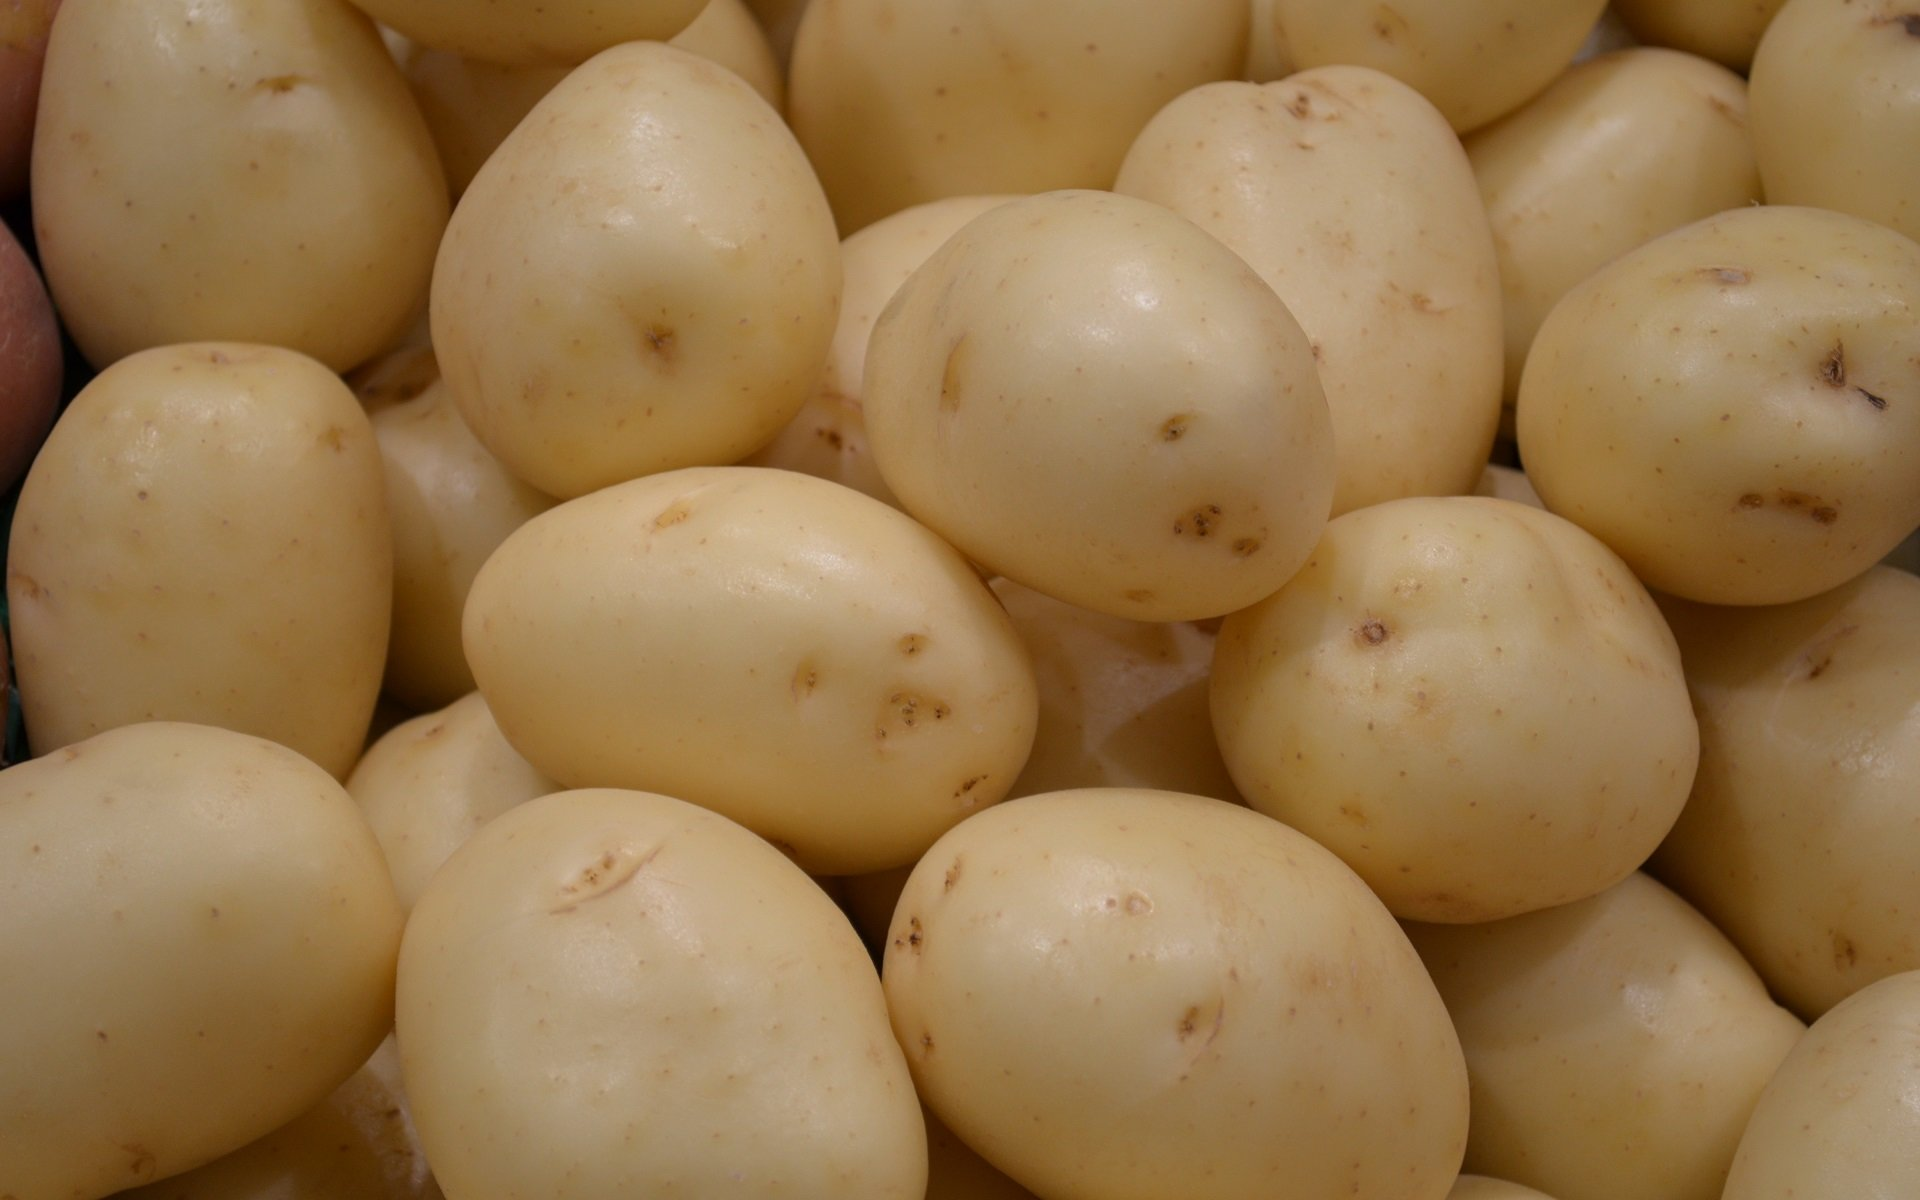 High resolution Potato hd 1920x1200 background ID:315043 for PC